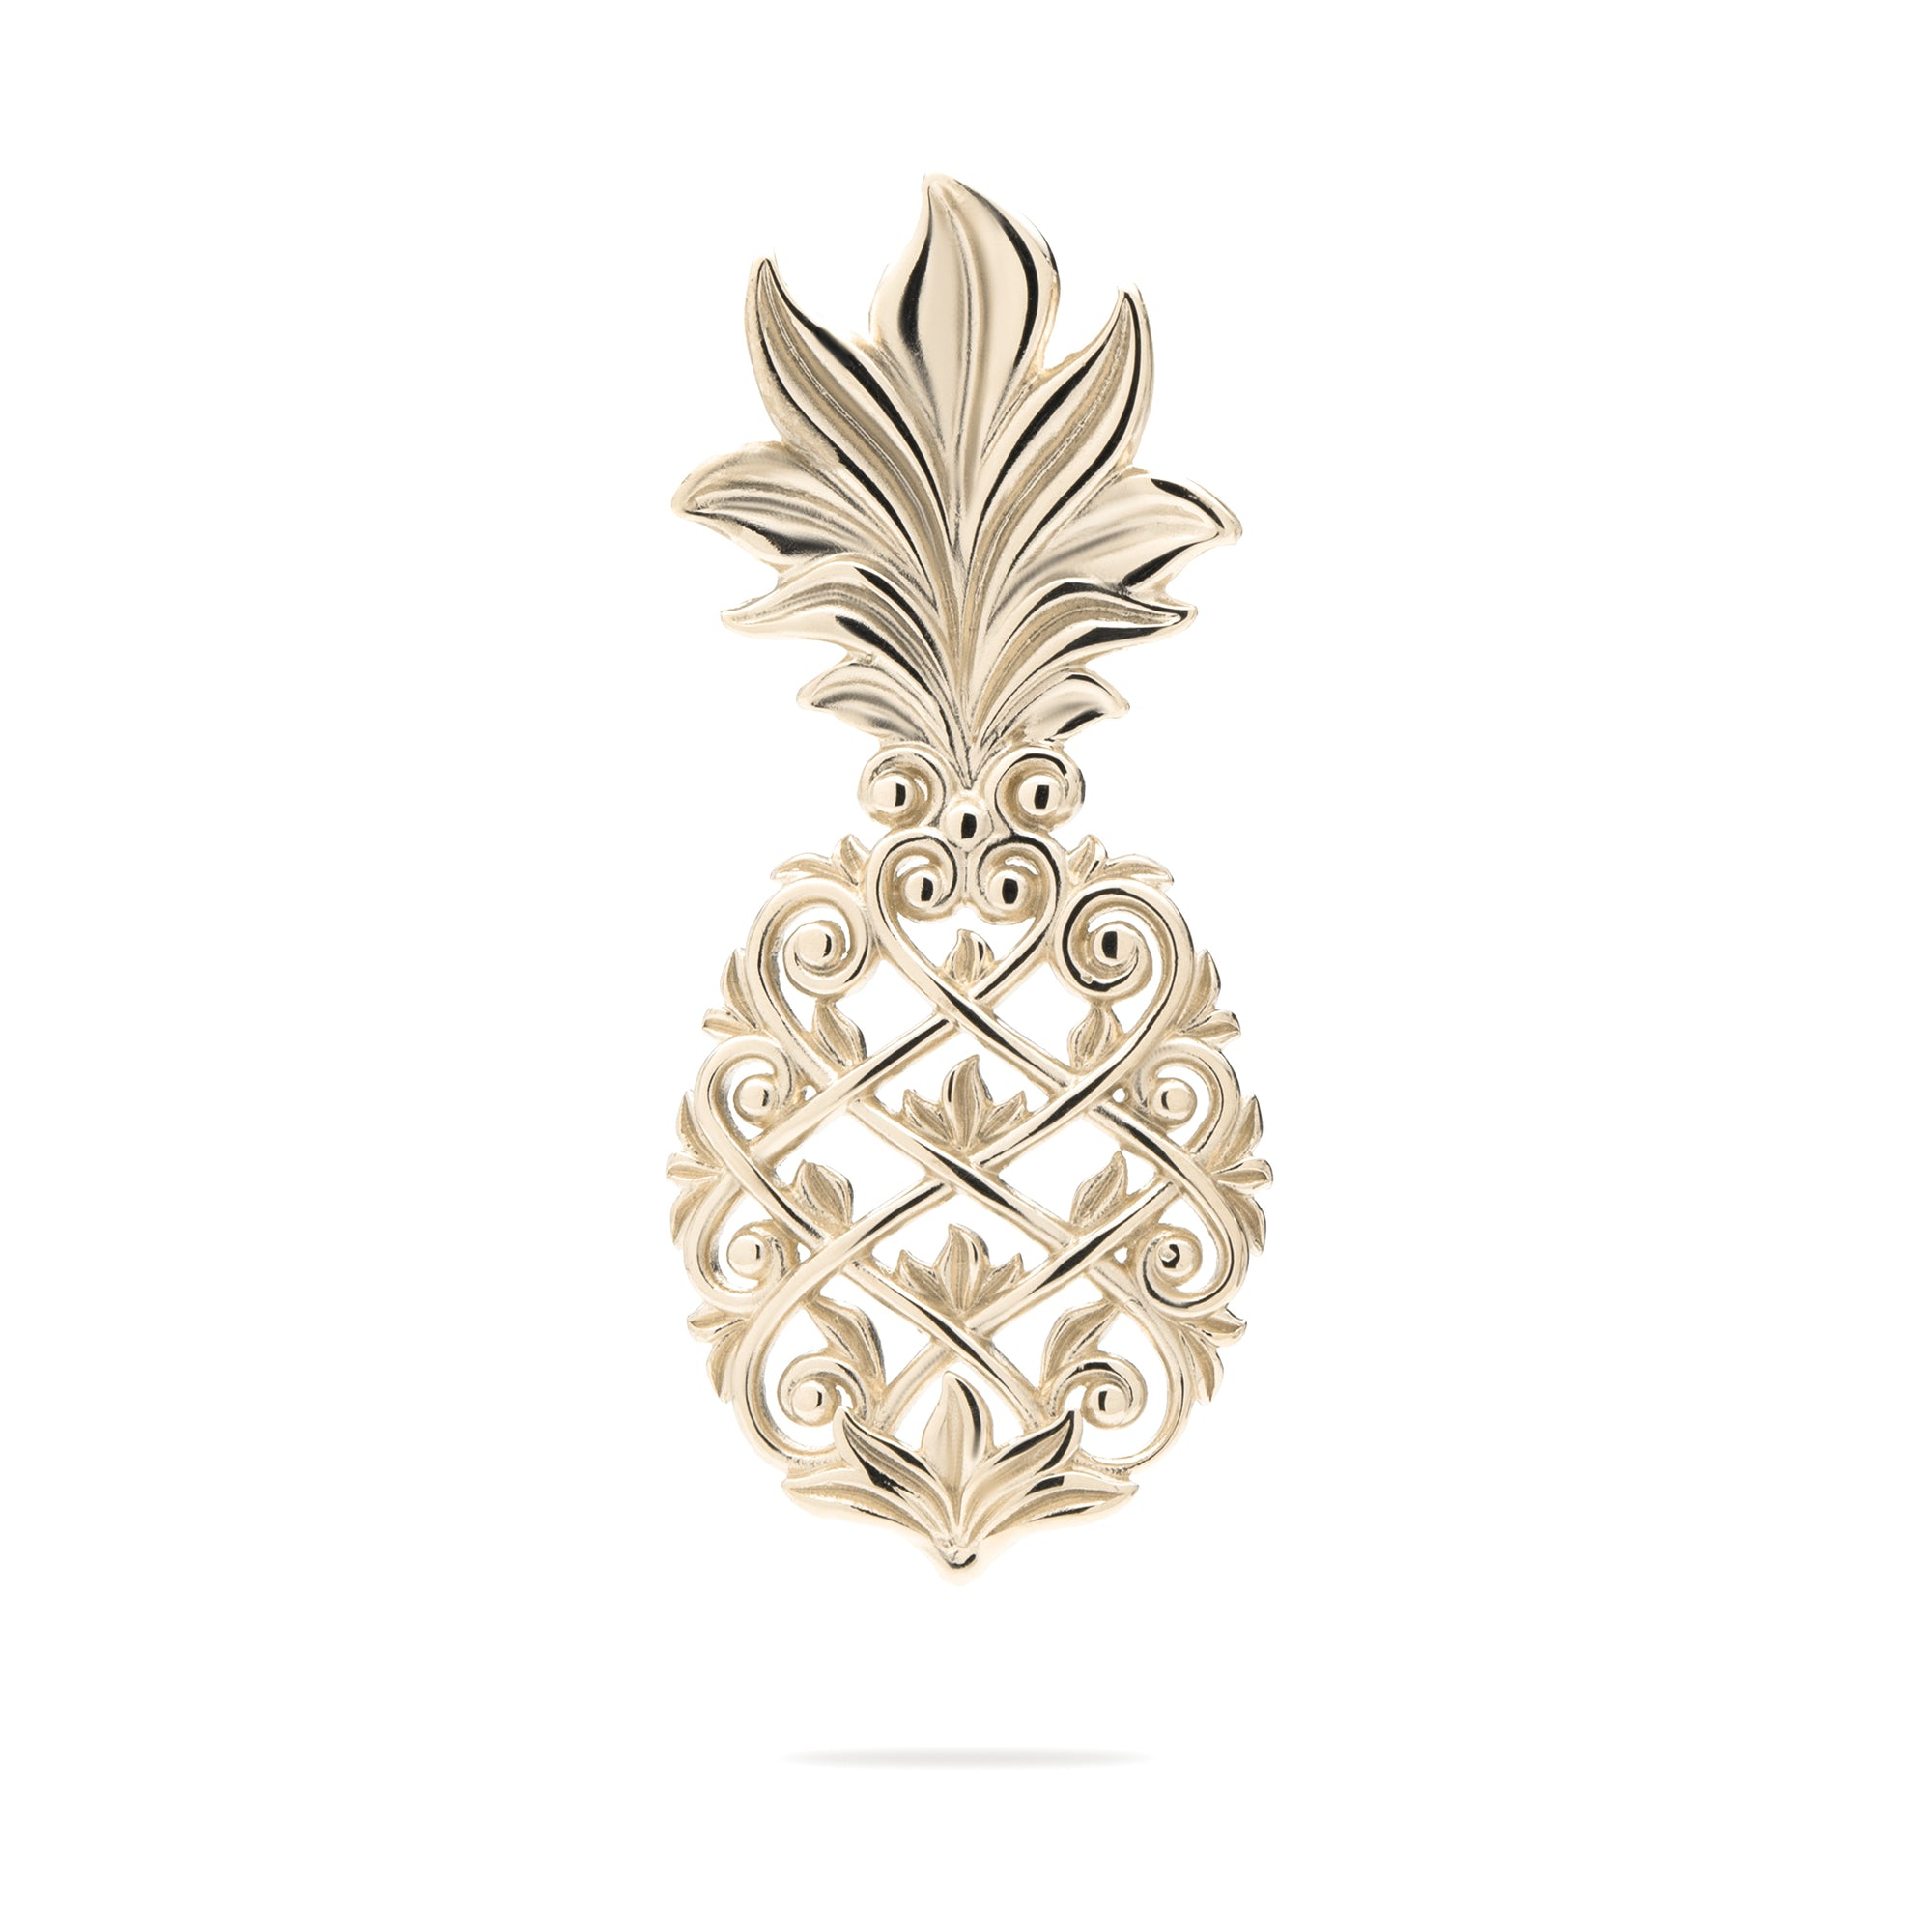 Living Heirloom Pineapple Pendant in 14K Yellow Gold-30mm - Maui Divers Jewelry